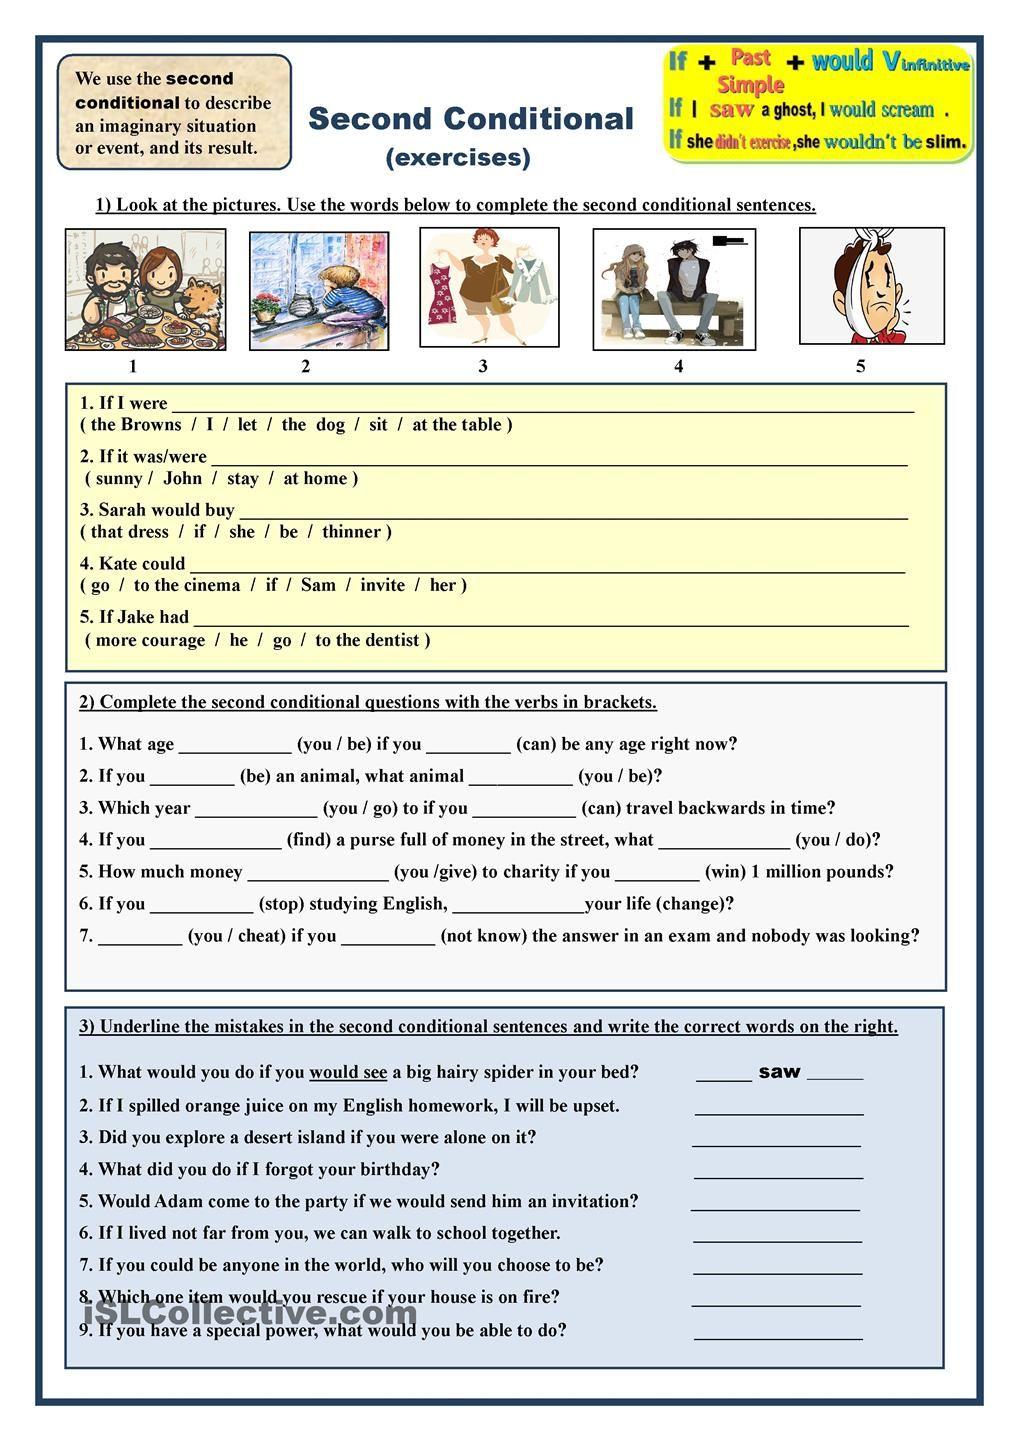 Second Conditional (exercises) | English Language | Pinterest ...